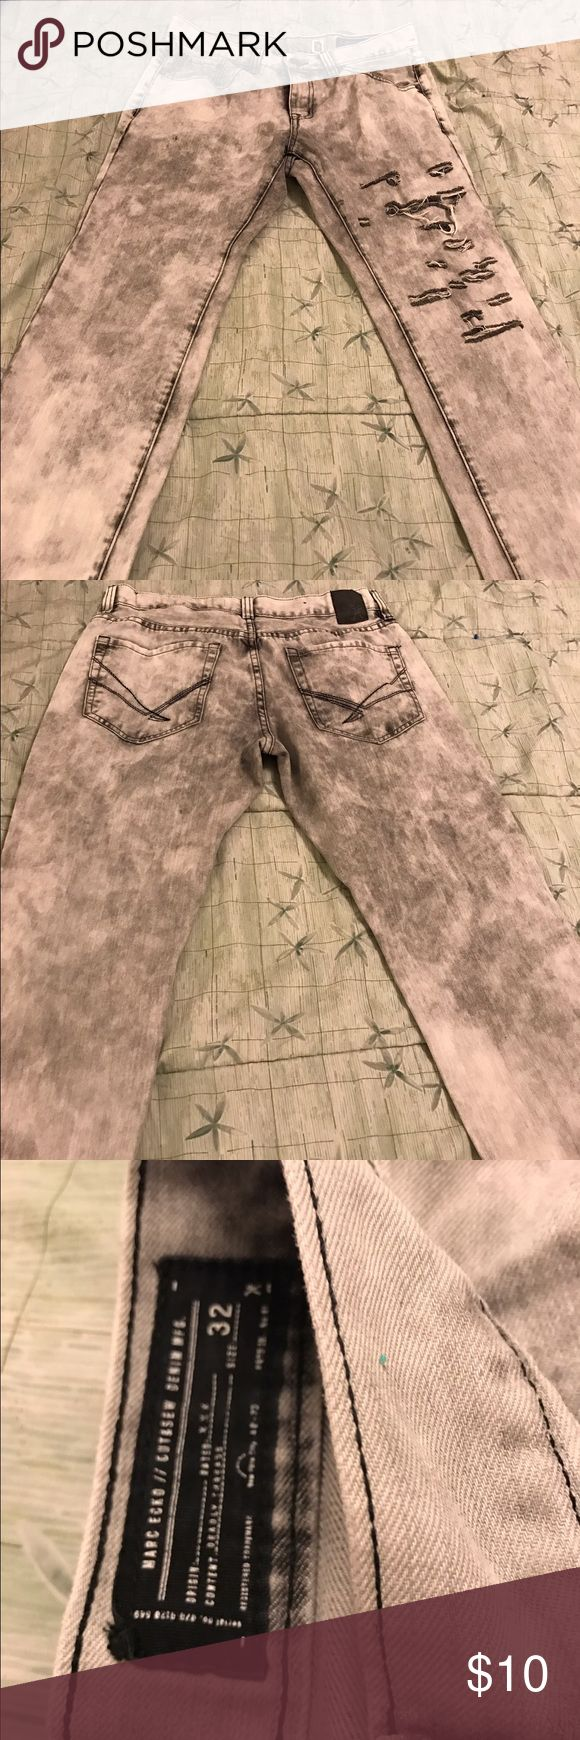 Men's Mark Ecko grey acid washed jeans Size 32. My son wanted to rip/distress them. They came acid washed but he wanted the ripped look. He did one leg and then decided he didn't like the fit! Lol. I didn't mess with the other leg. Make an offer marc ecko cut & sew Jeans Straight